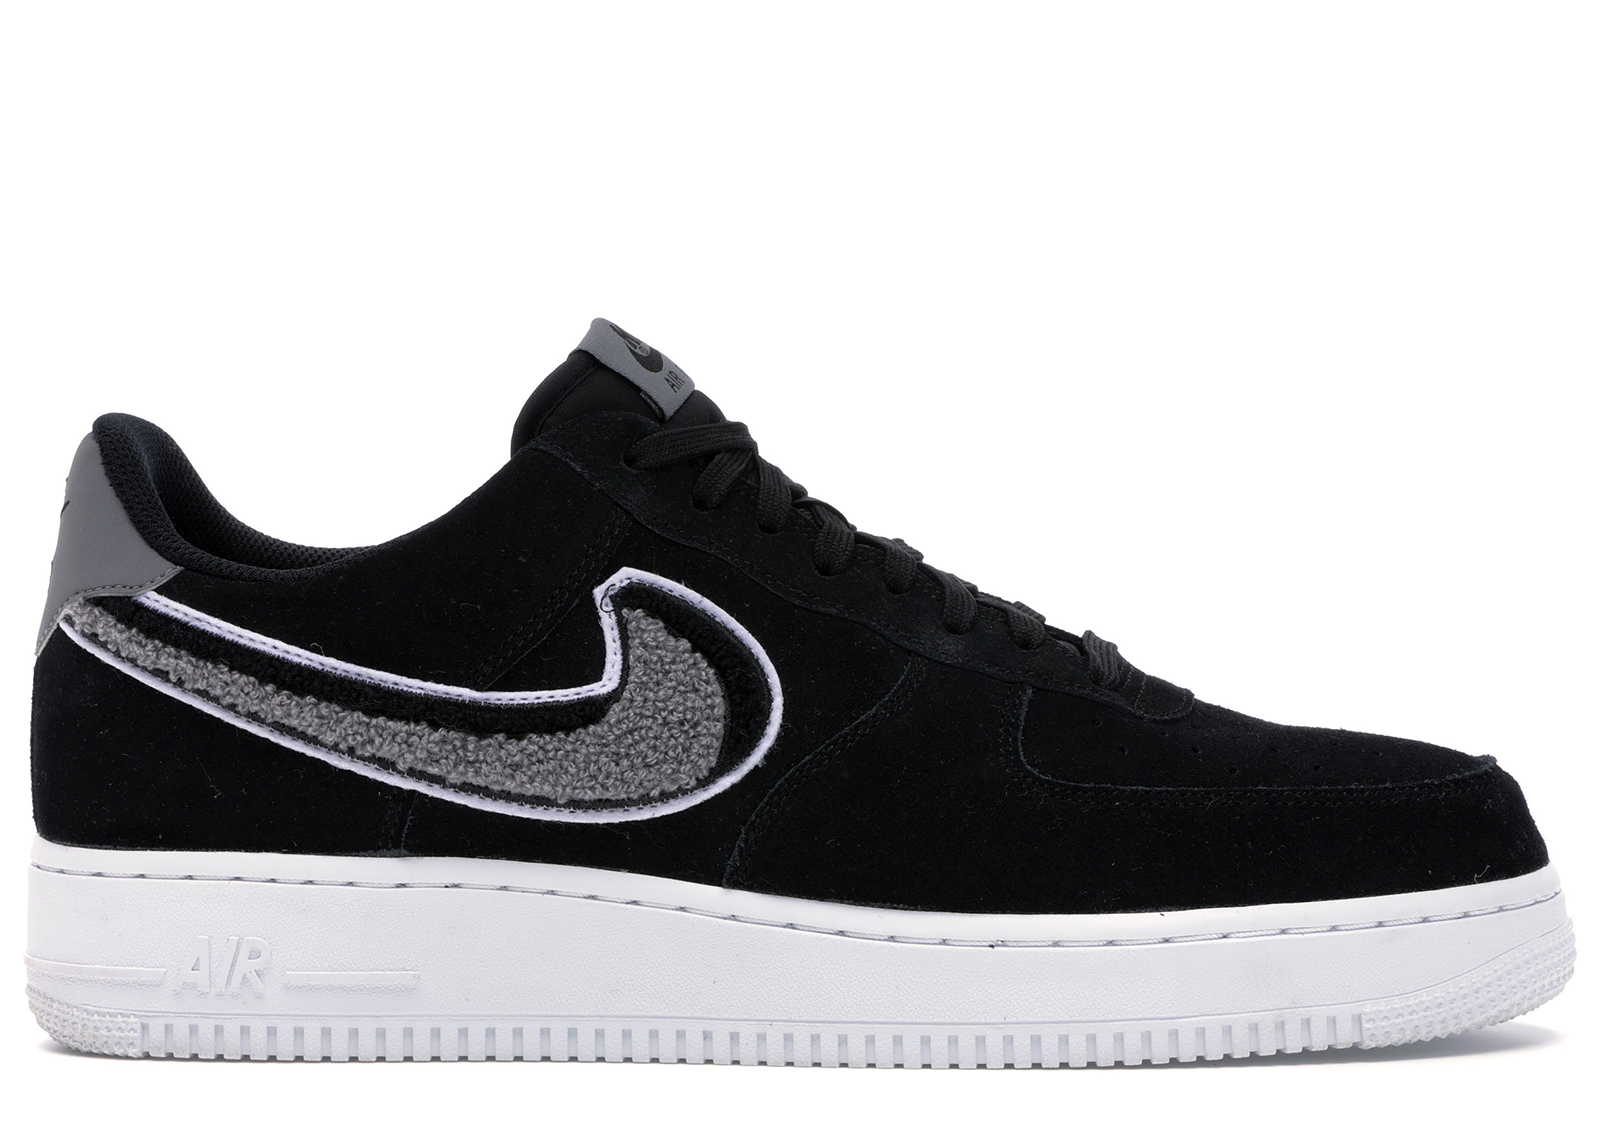 Nike Air Force 1 Low 3D Chenille Swoosh Black Cool Grey - 823511-014